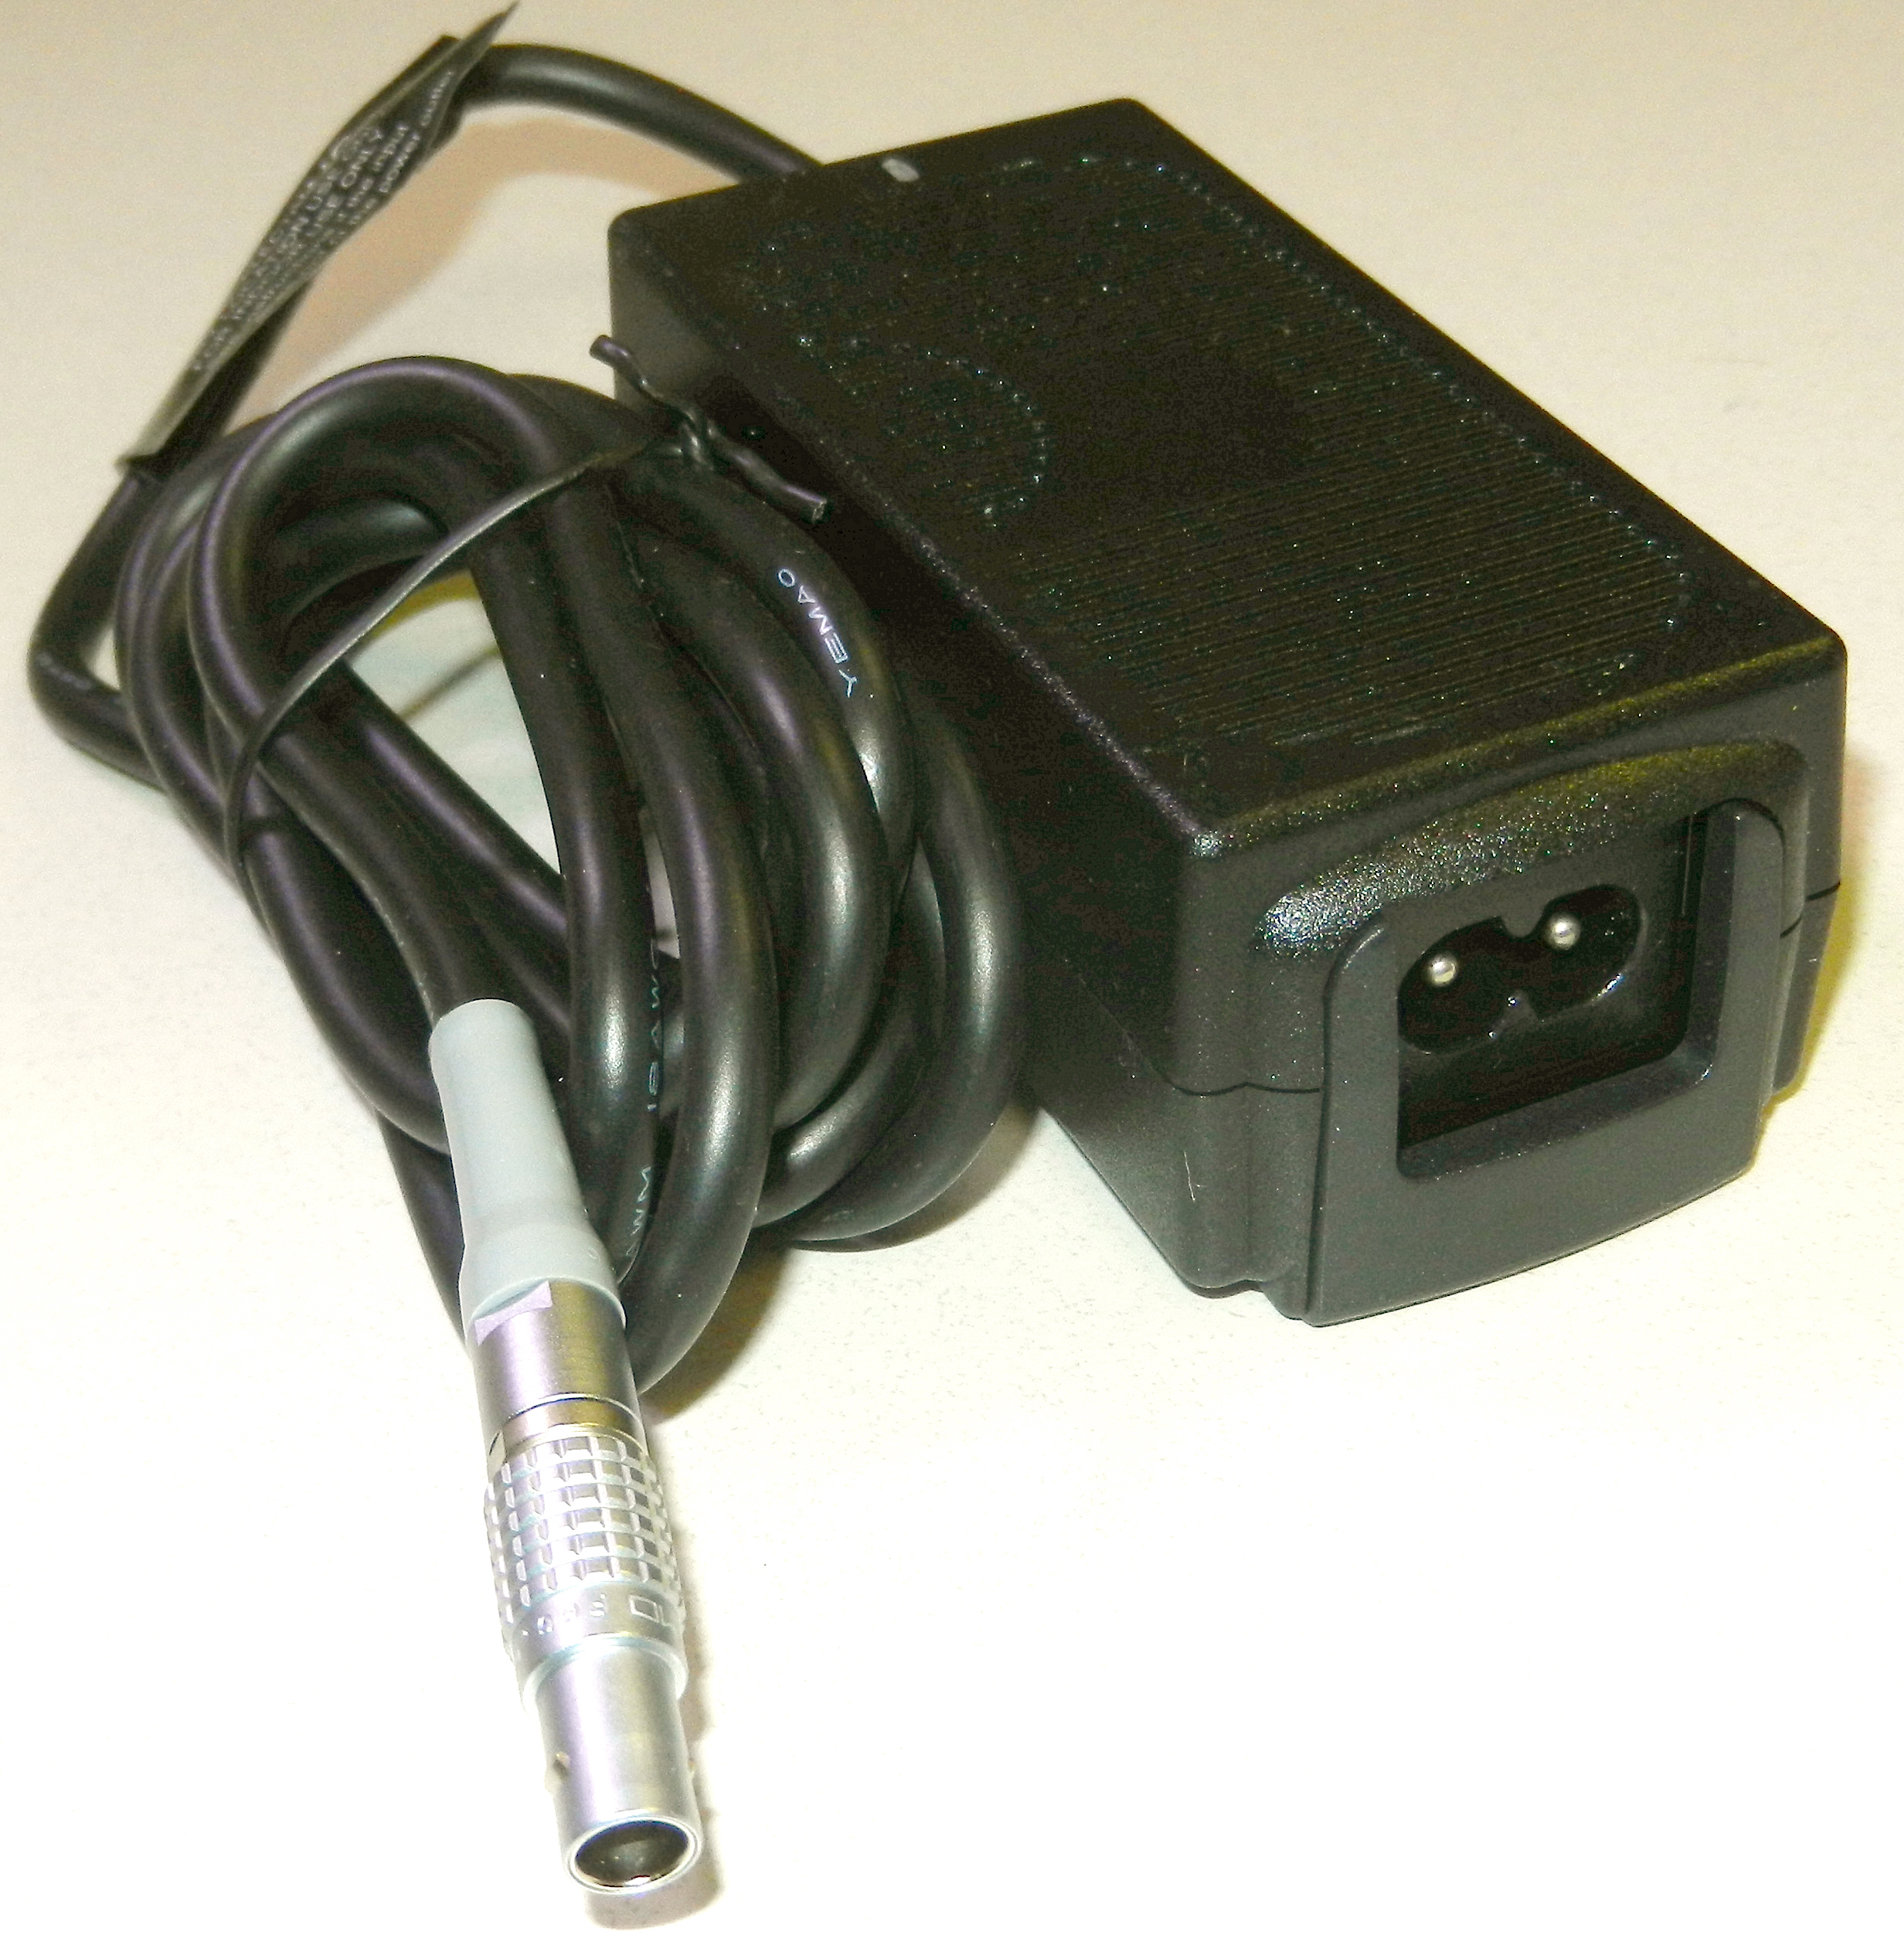 GlobTek's in-house cable assembly and injection molding division is now producing power supply ac adapters with Lemo P/N FGG.0B.305.CLAD52.Z with bend relief P/N GMA.0B.045.DG to address a customer specific...